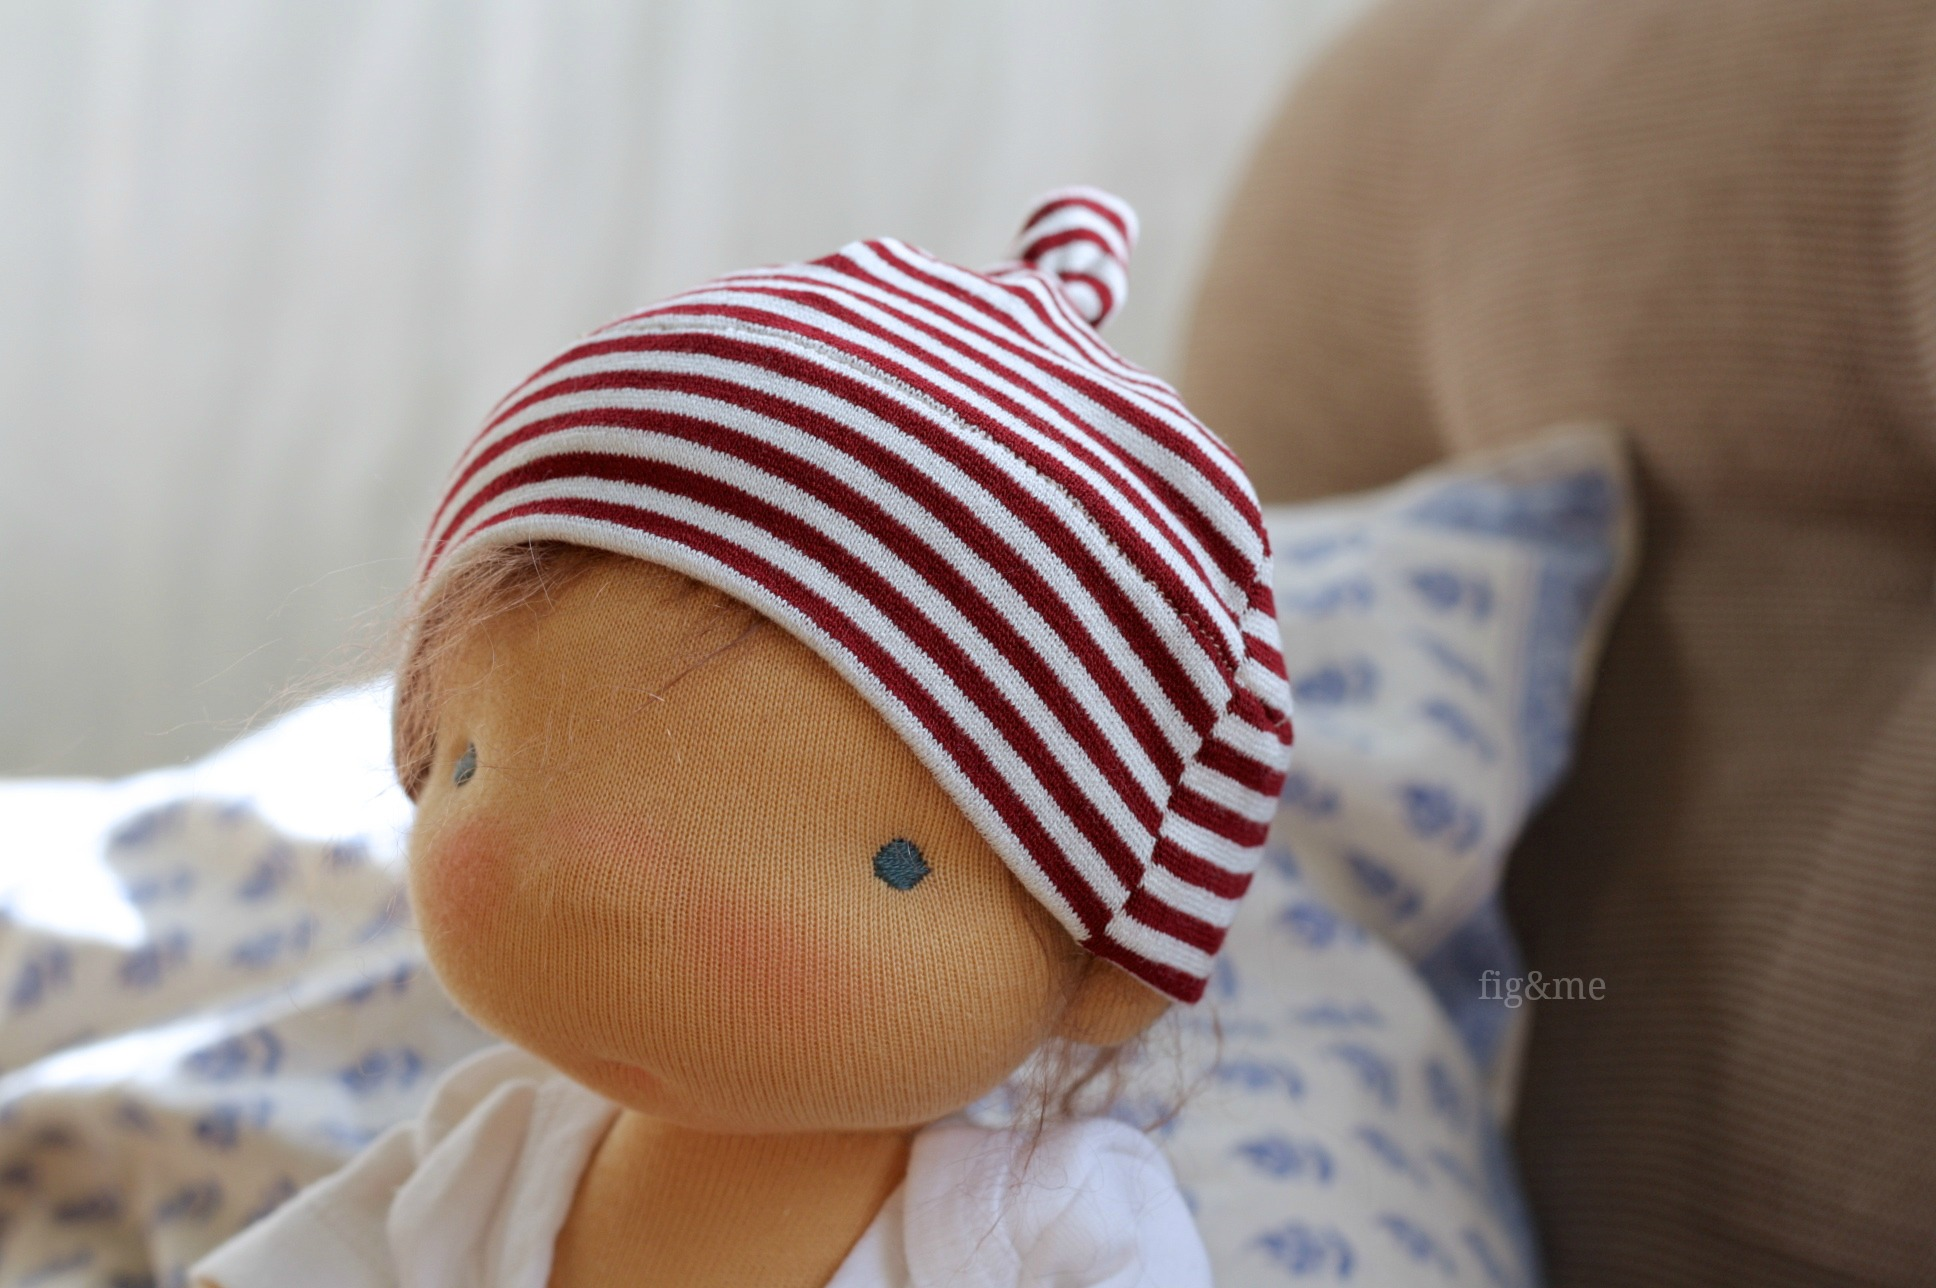 Baby jersey hat, with a top knot. By Fig&me